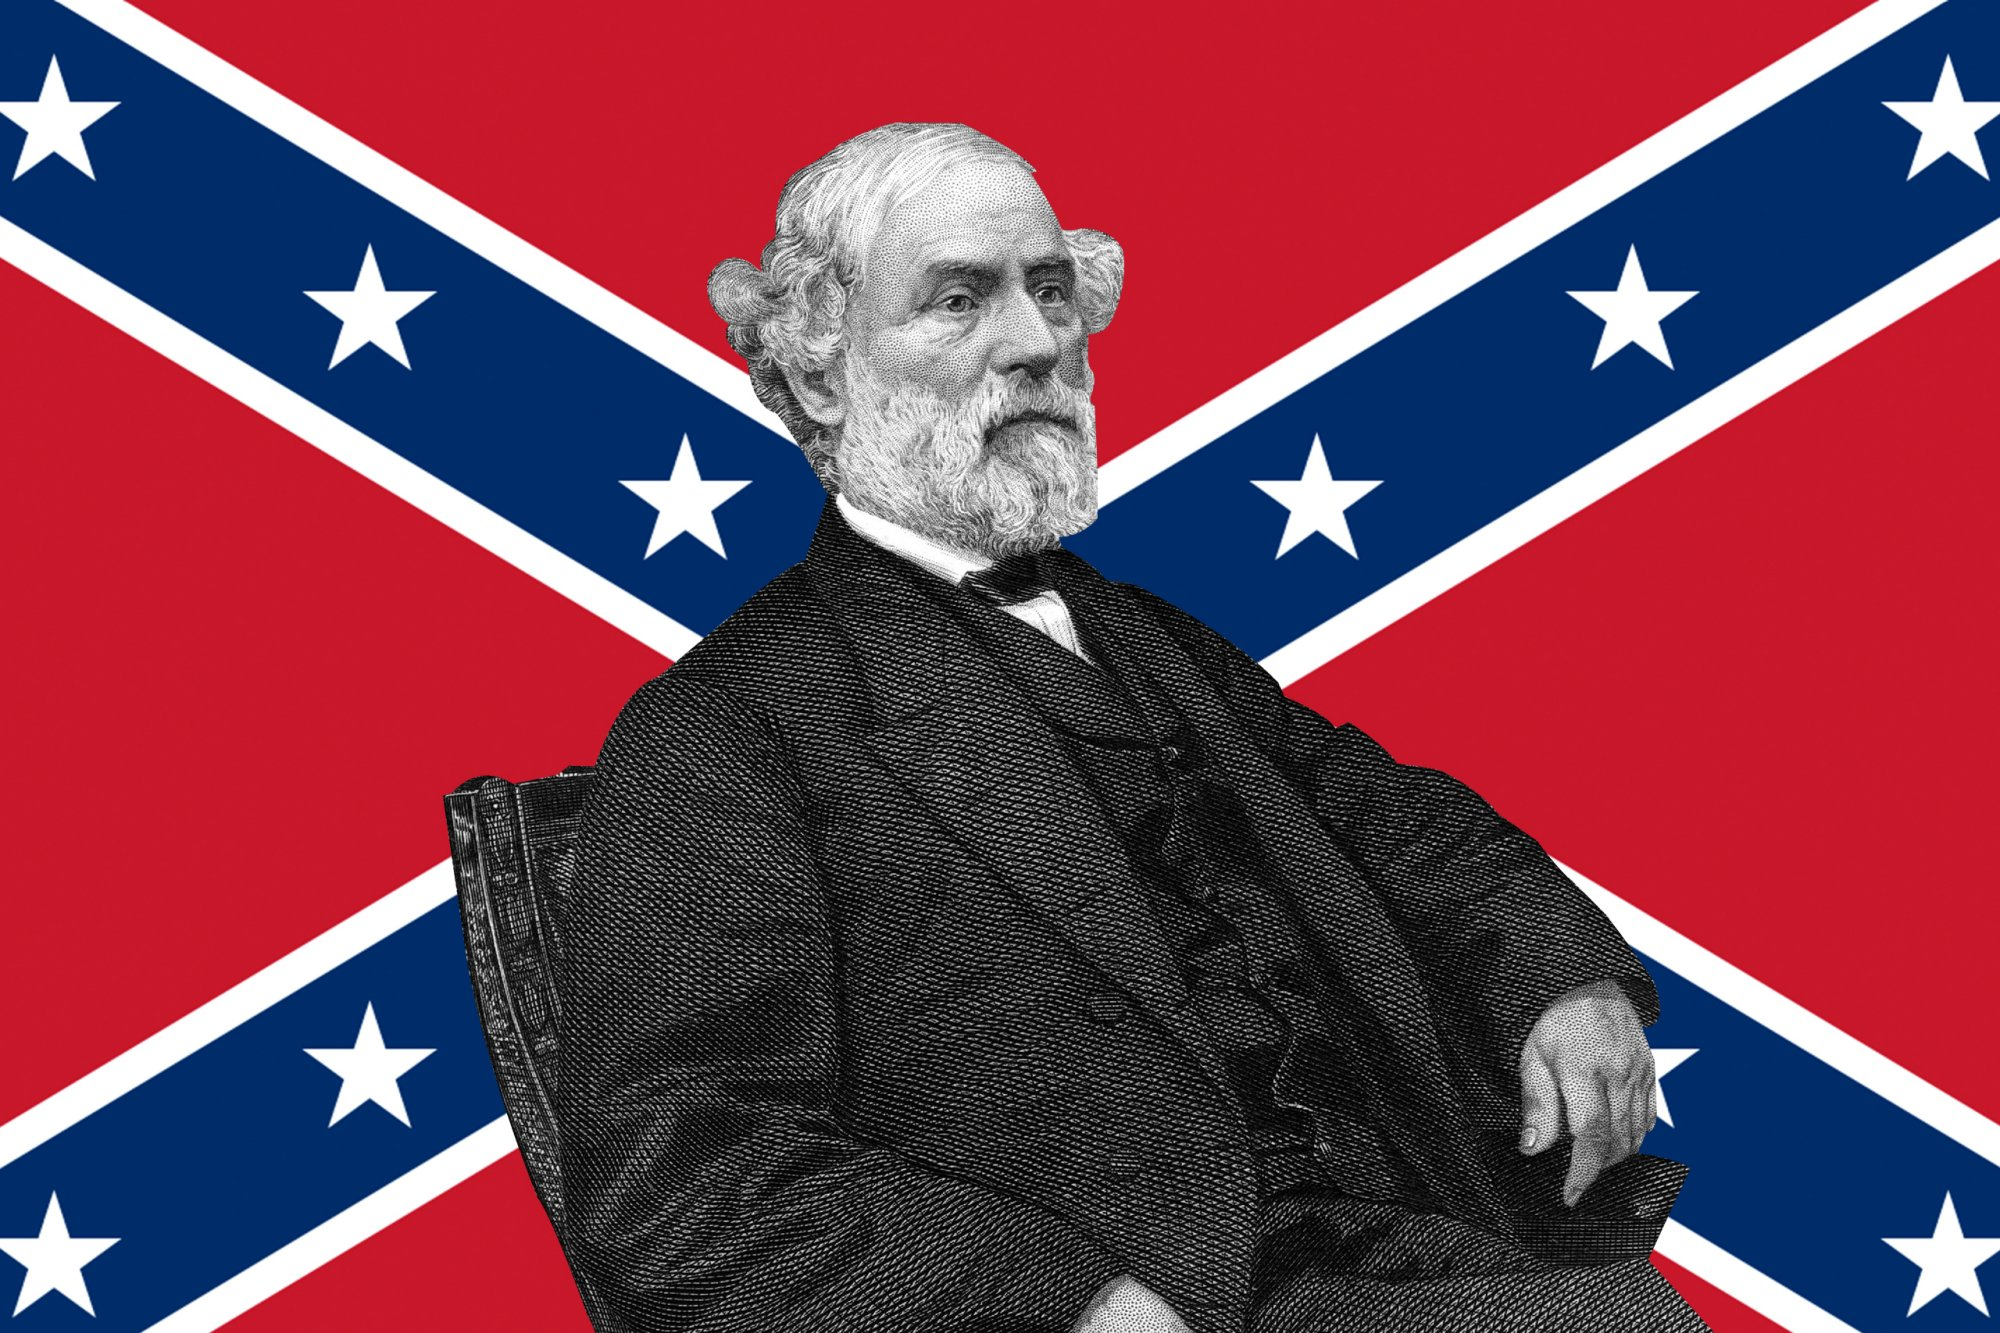 14678 Confederate Flag Wallpaper 20001333 2000x1333